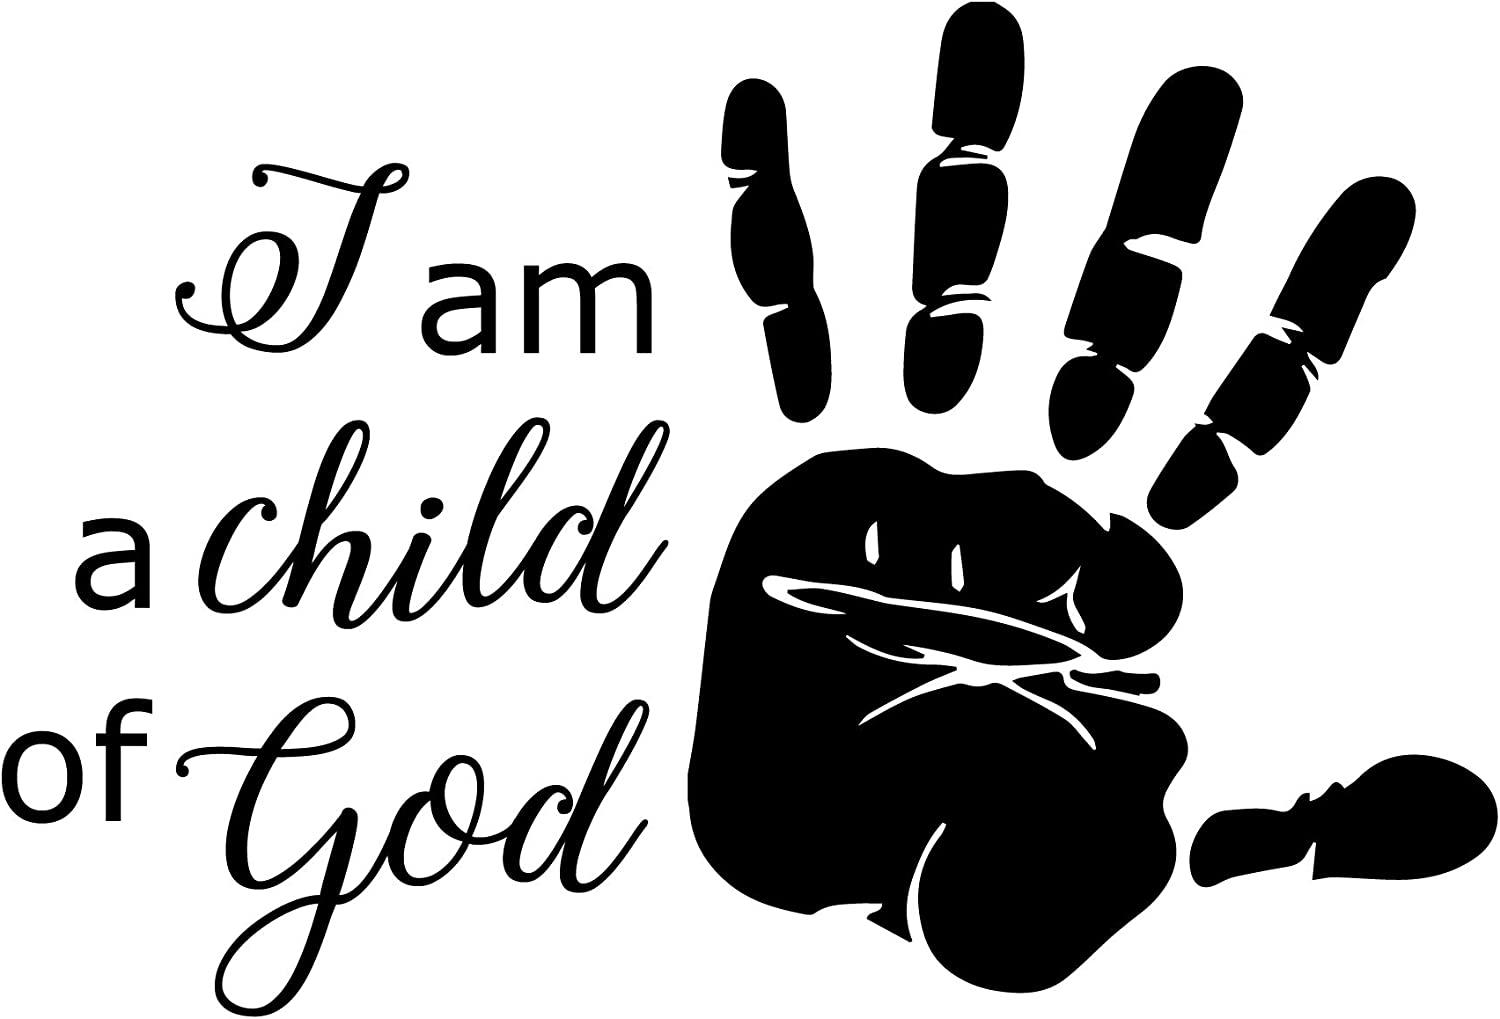 CustomVinylDecor Christian Quote Wall Decor I am a Child of God with Hand Print Religious Vinyl Lettering Sticker for Home, Church, Office, or School Classroom